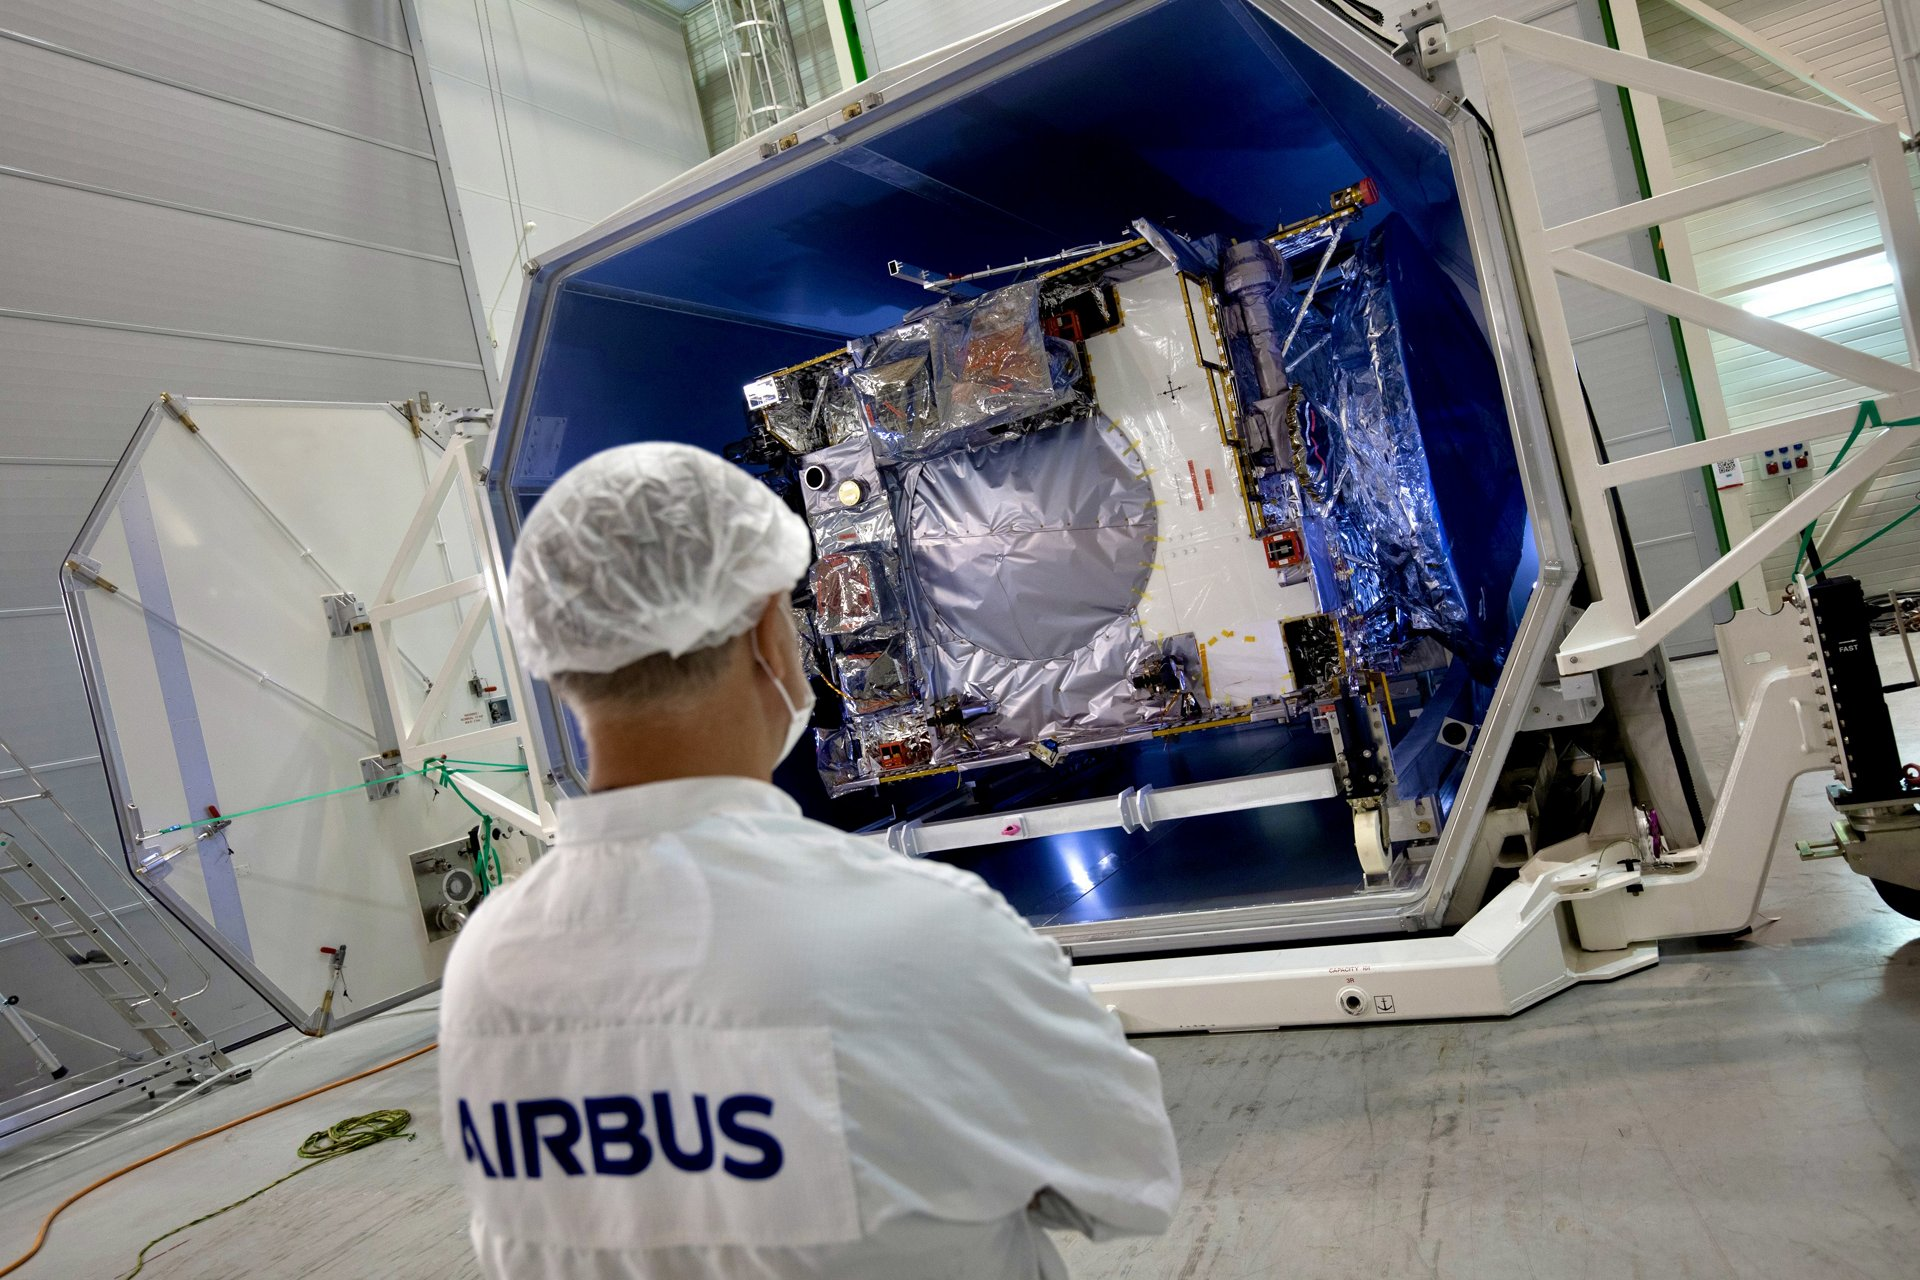 The Airbus-built JUICE spacecraft, (JUpiter ICy moons Explorer mission) developed for the European Space Agency (ESA)  has arrived in Toulouse, where it will stay for its final assembly and test campaign at Airbus' satellite integration centre, before being shipped to Kourou in French Guiana for launch on Ariane 5.